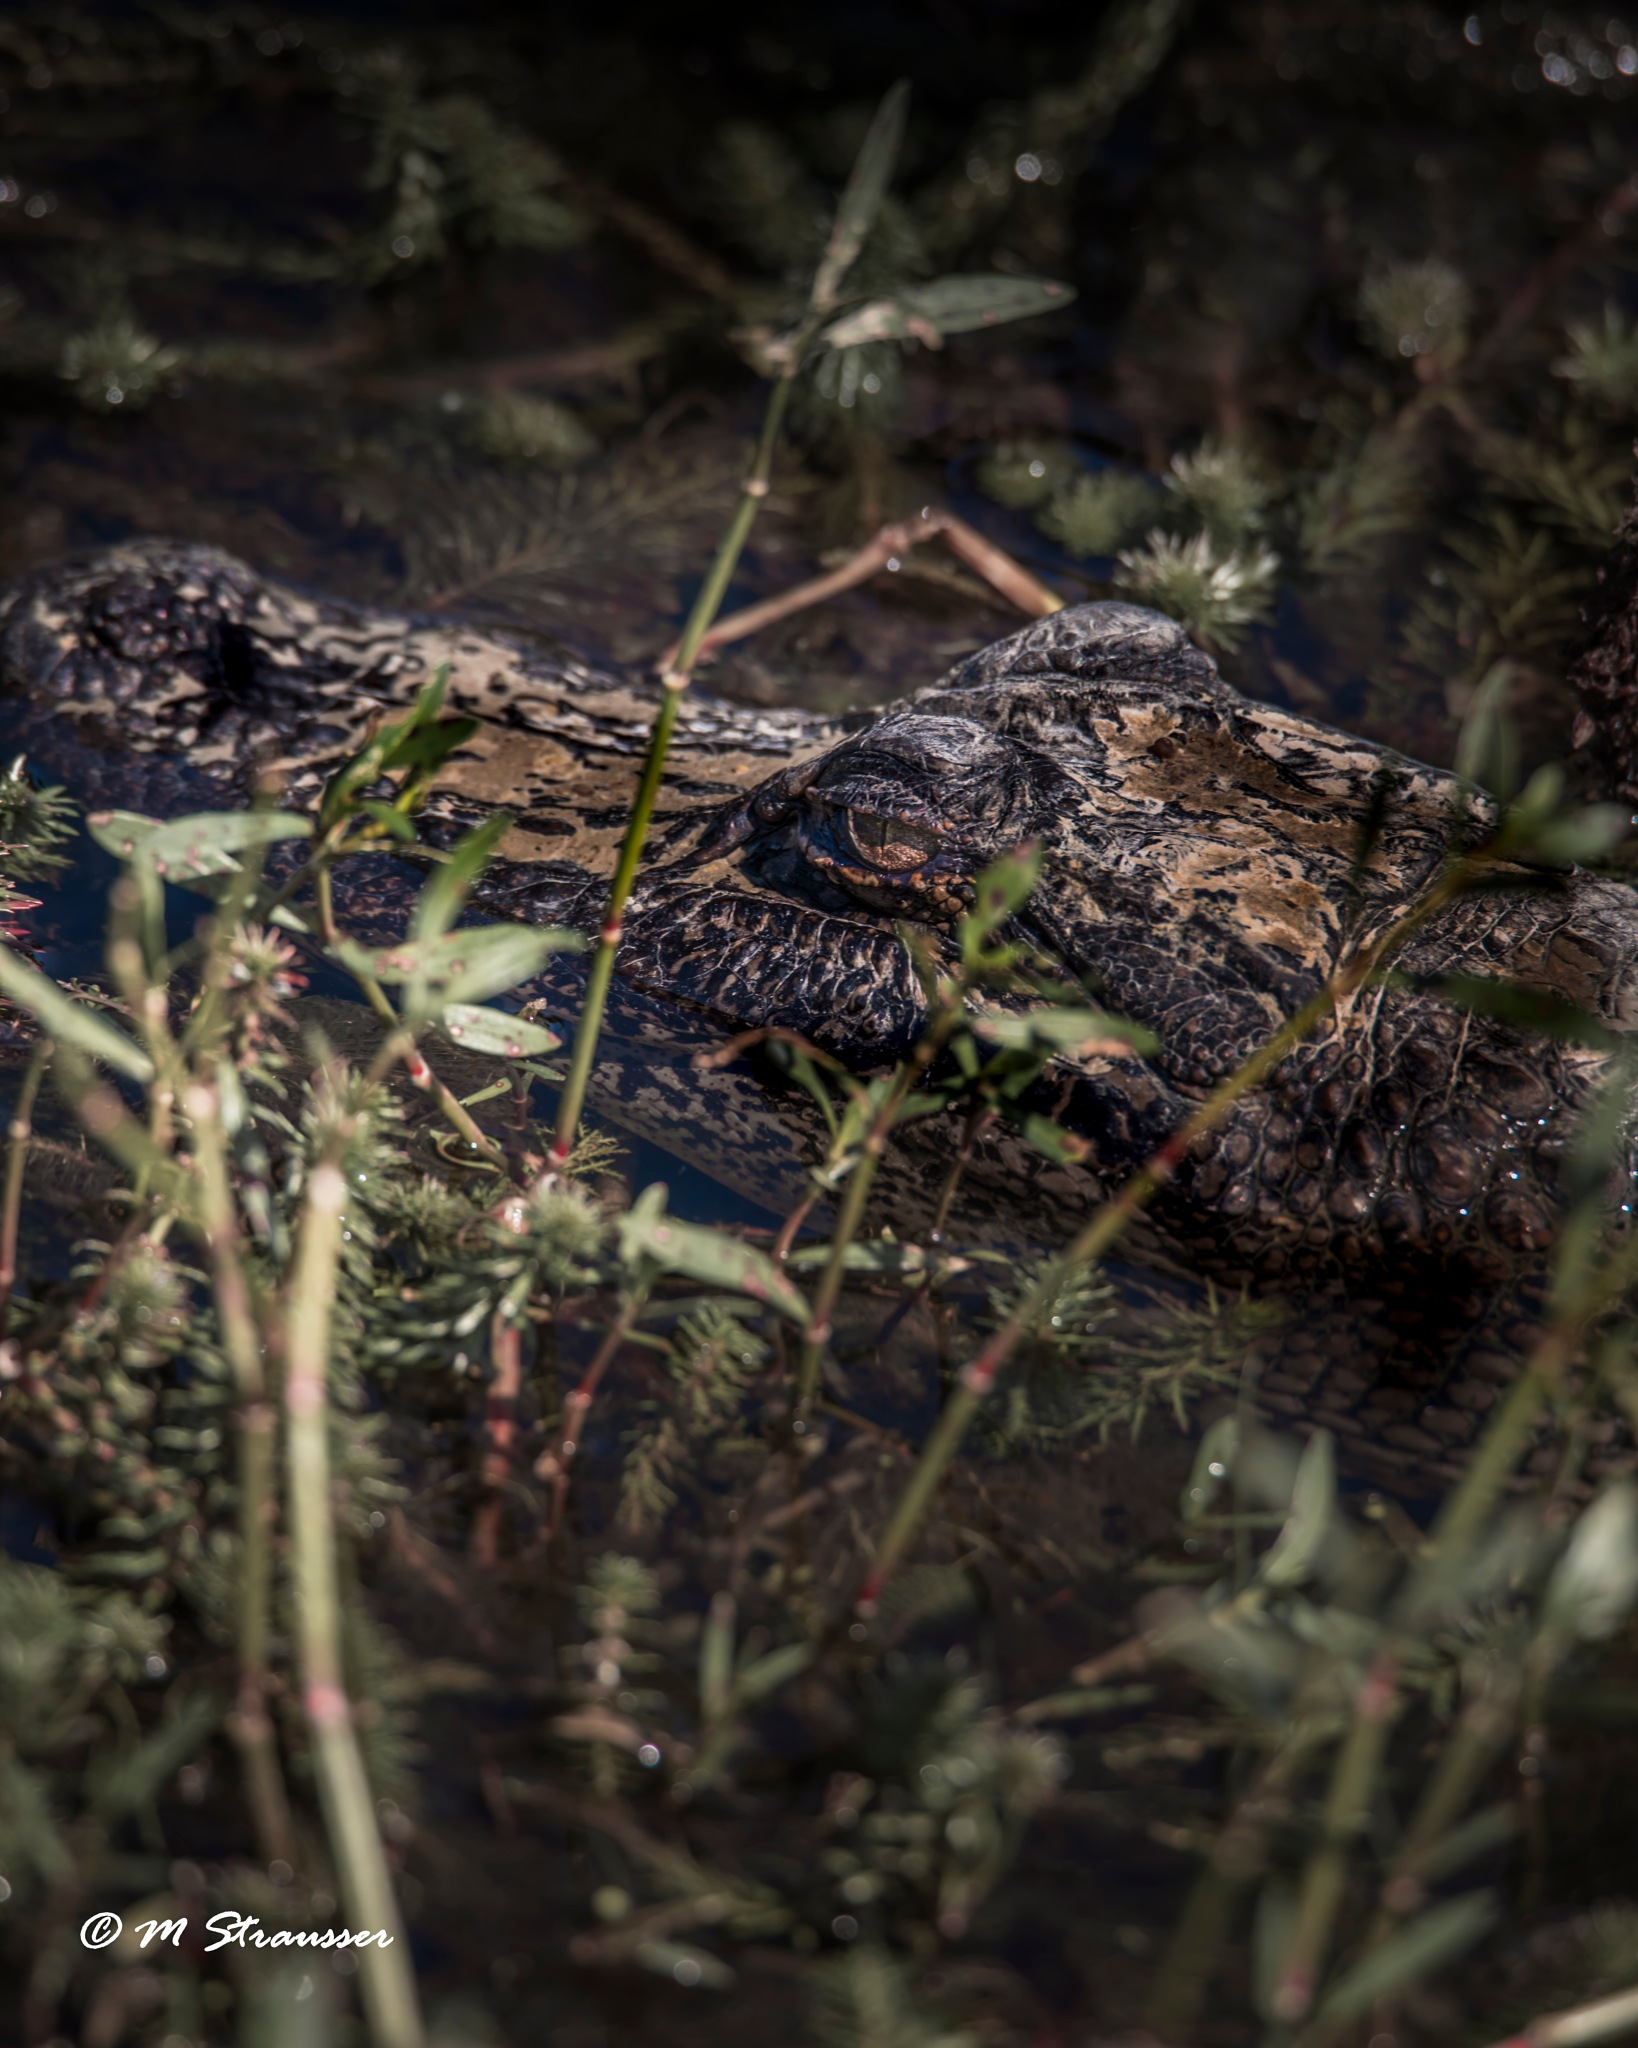 gator head by MStrausser of the iMage Shack